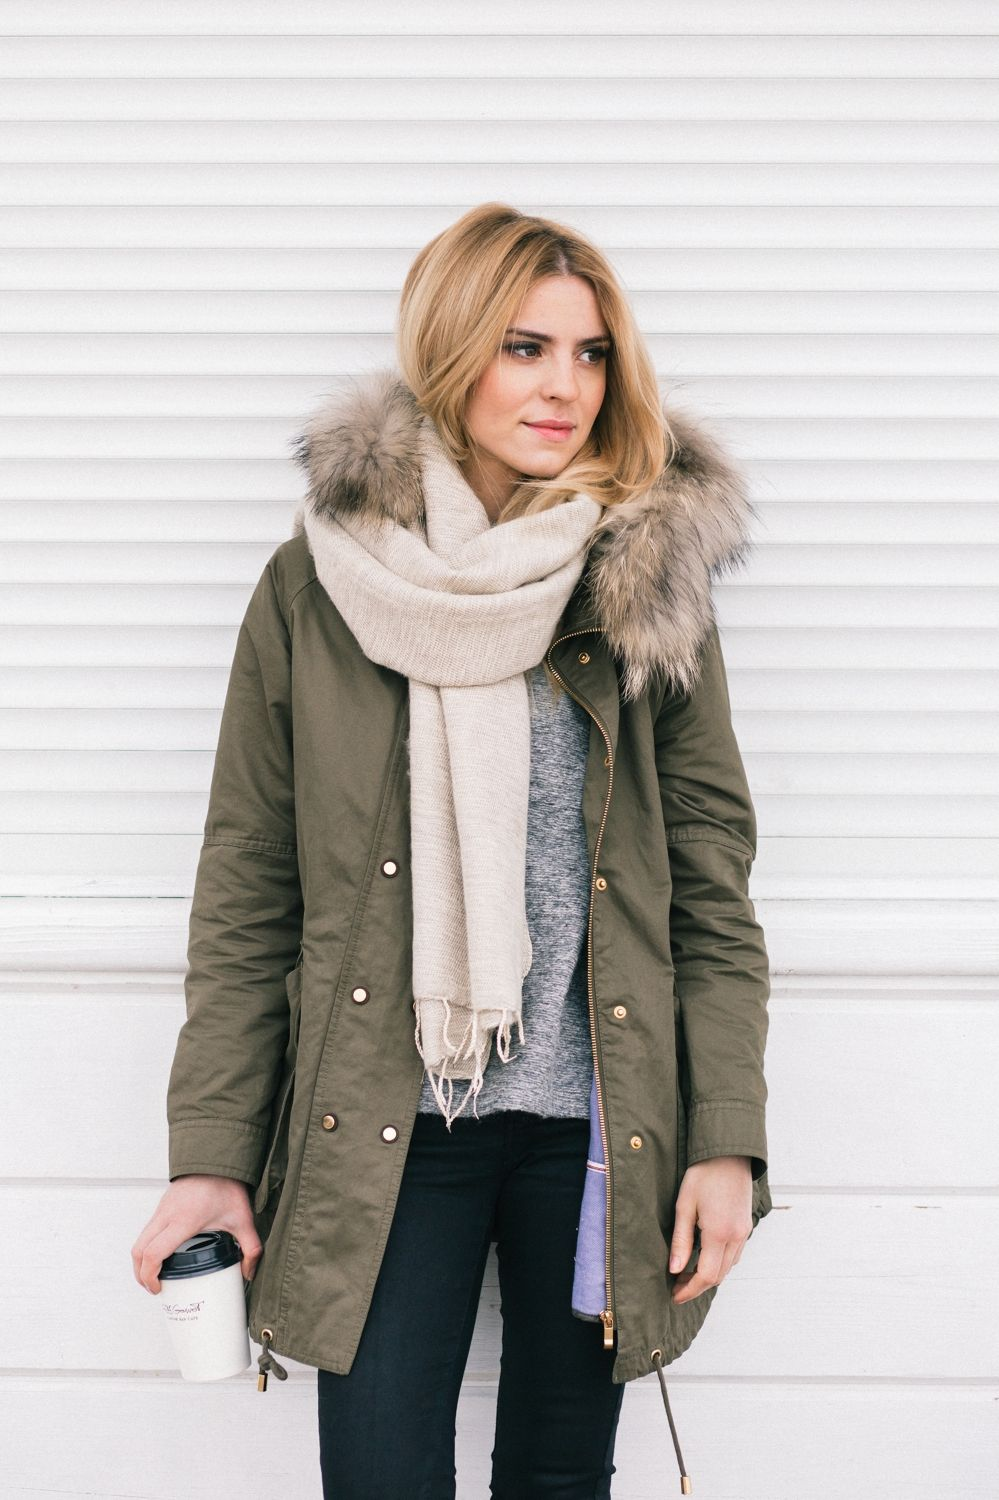 31+ Winter Fashion Outfits For Work Classy